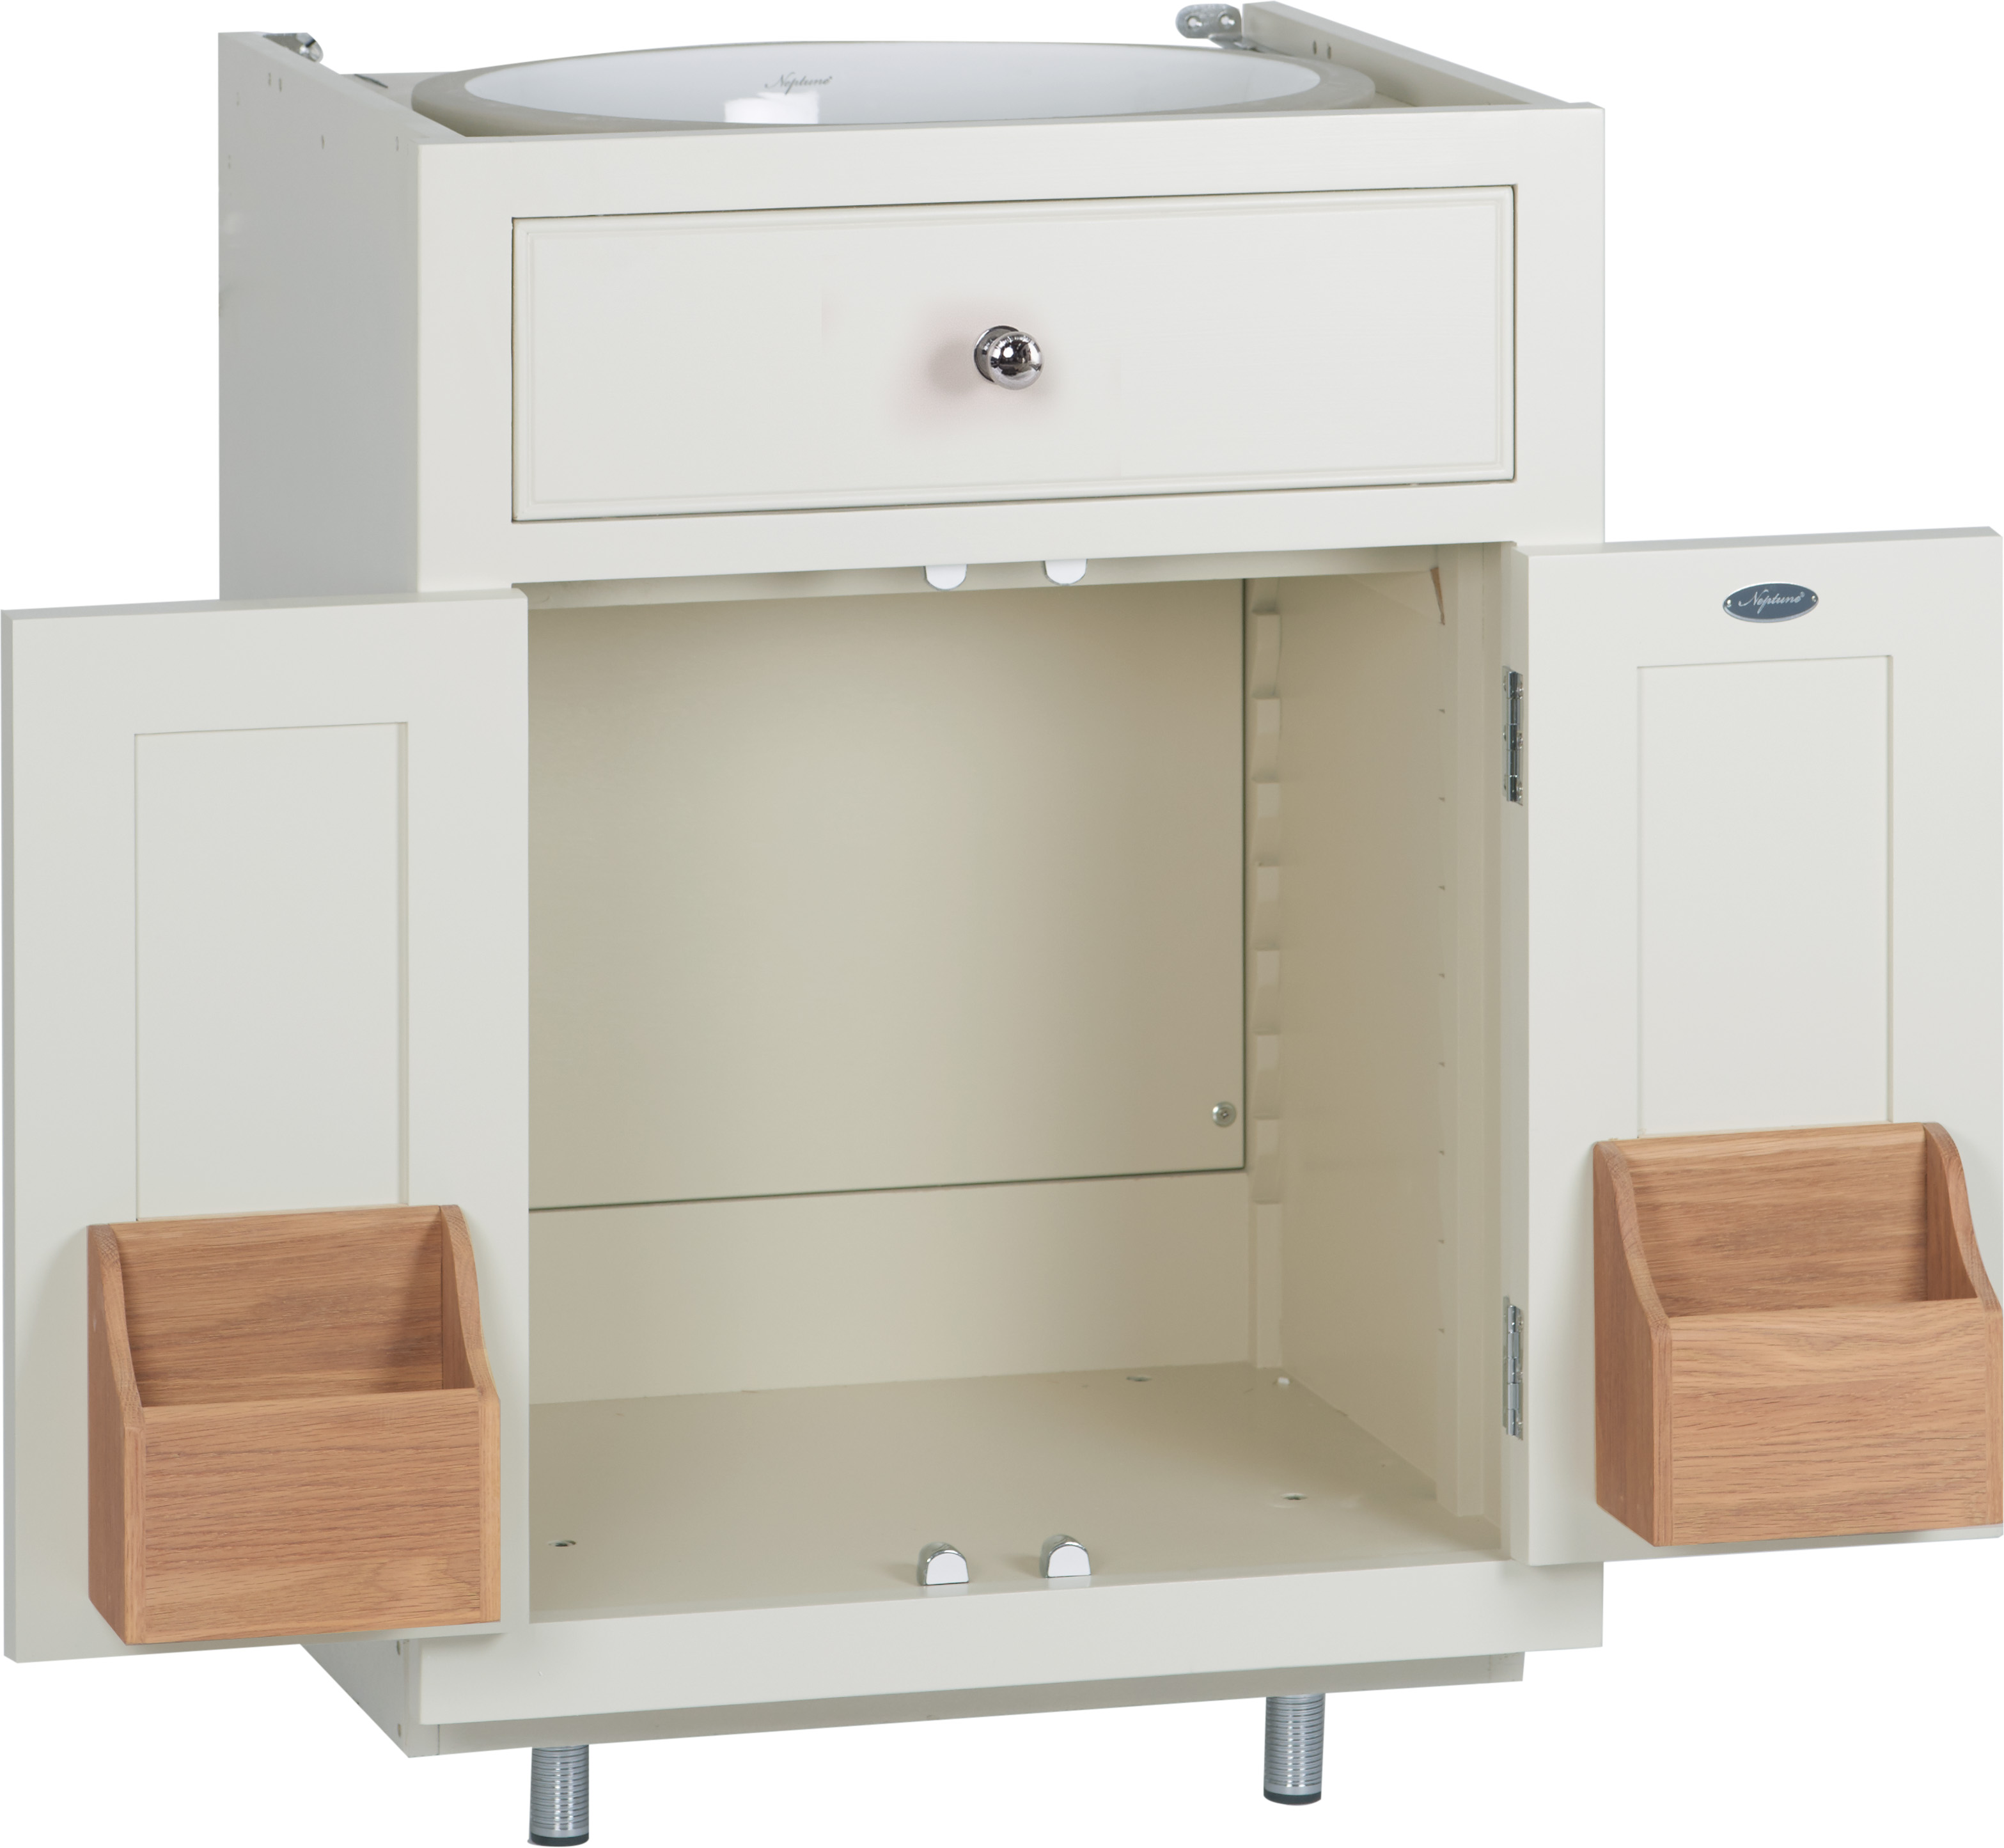 Neptune Chichester Sink Door Base Cabinet